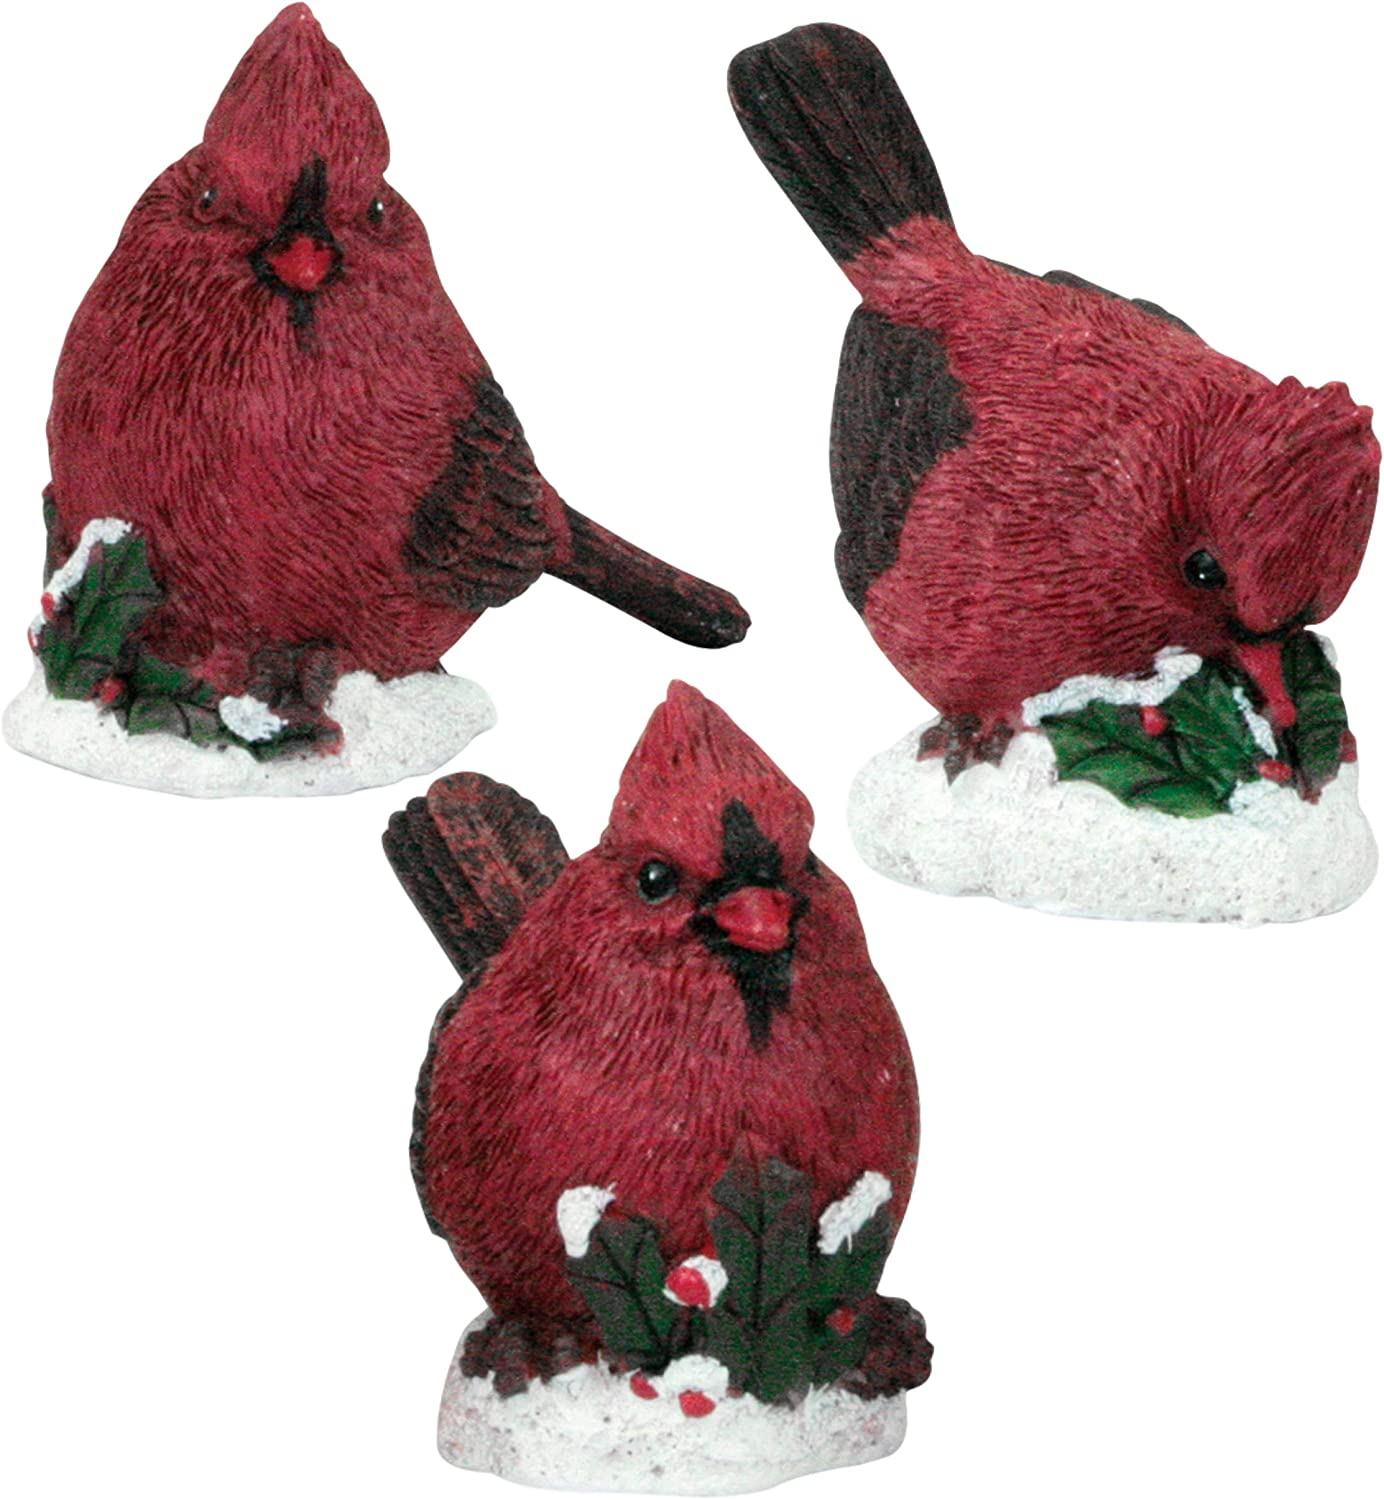 BANBERRY DESIGNS Cardinal Statues and Figurines - Set of 3 Christmas Style Cardinals with Red Berries, Holly and Snow Detail - Realistic Hand Carved Birds Holiday Decor - Assorted 3 to 4 Inches Tall